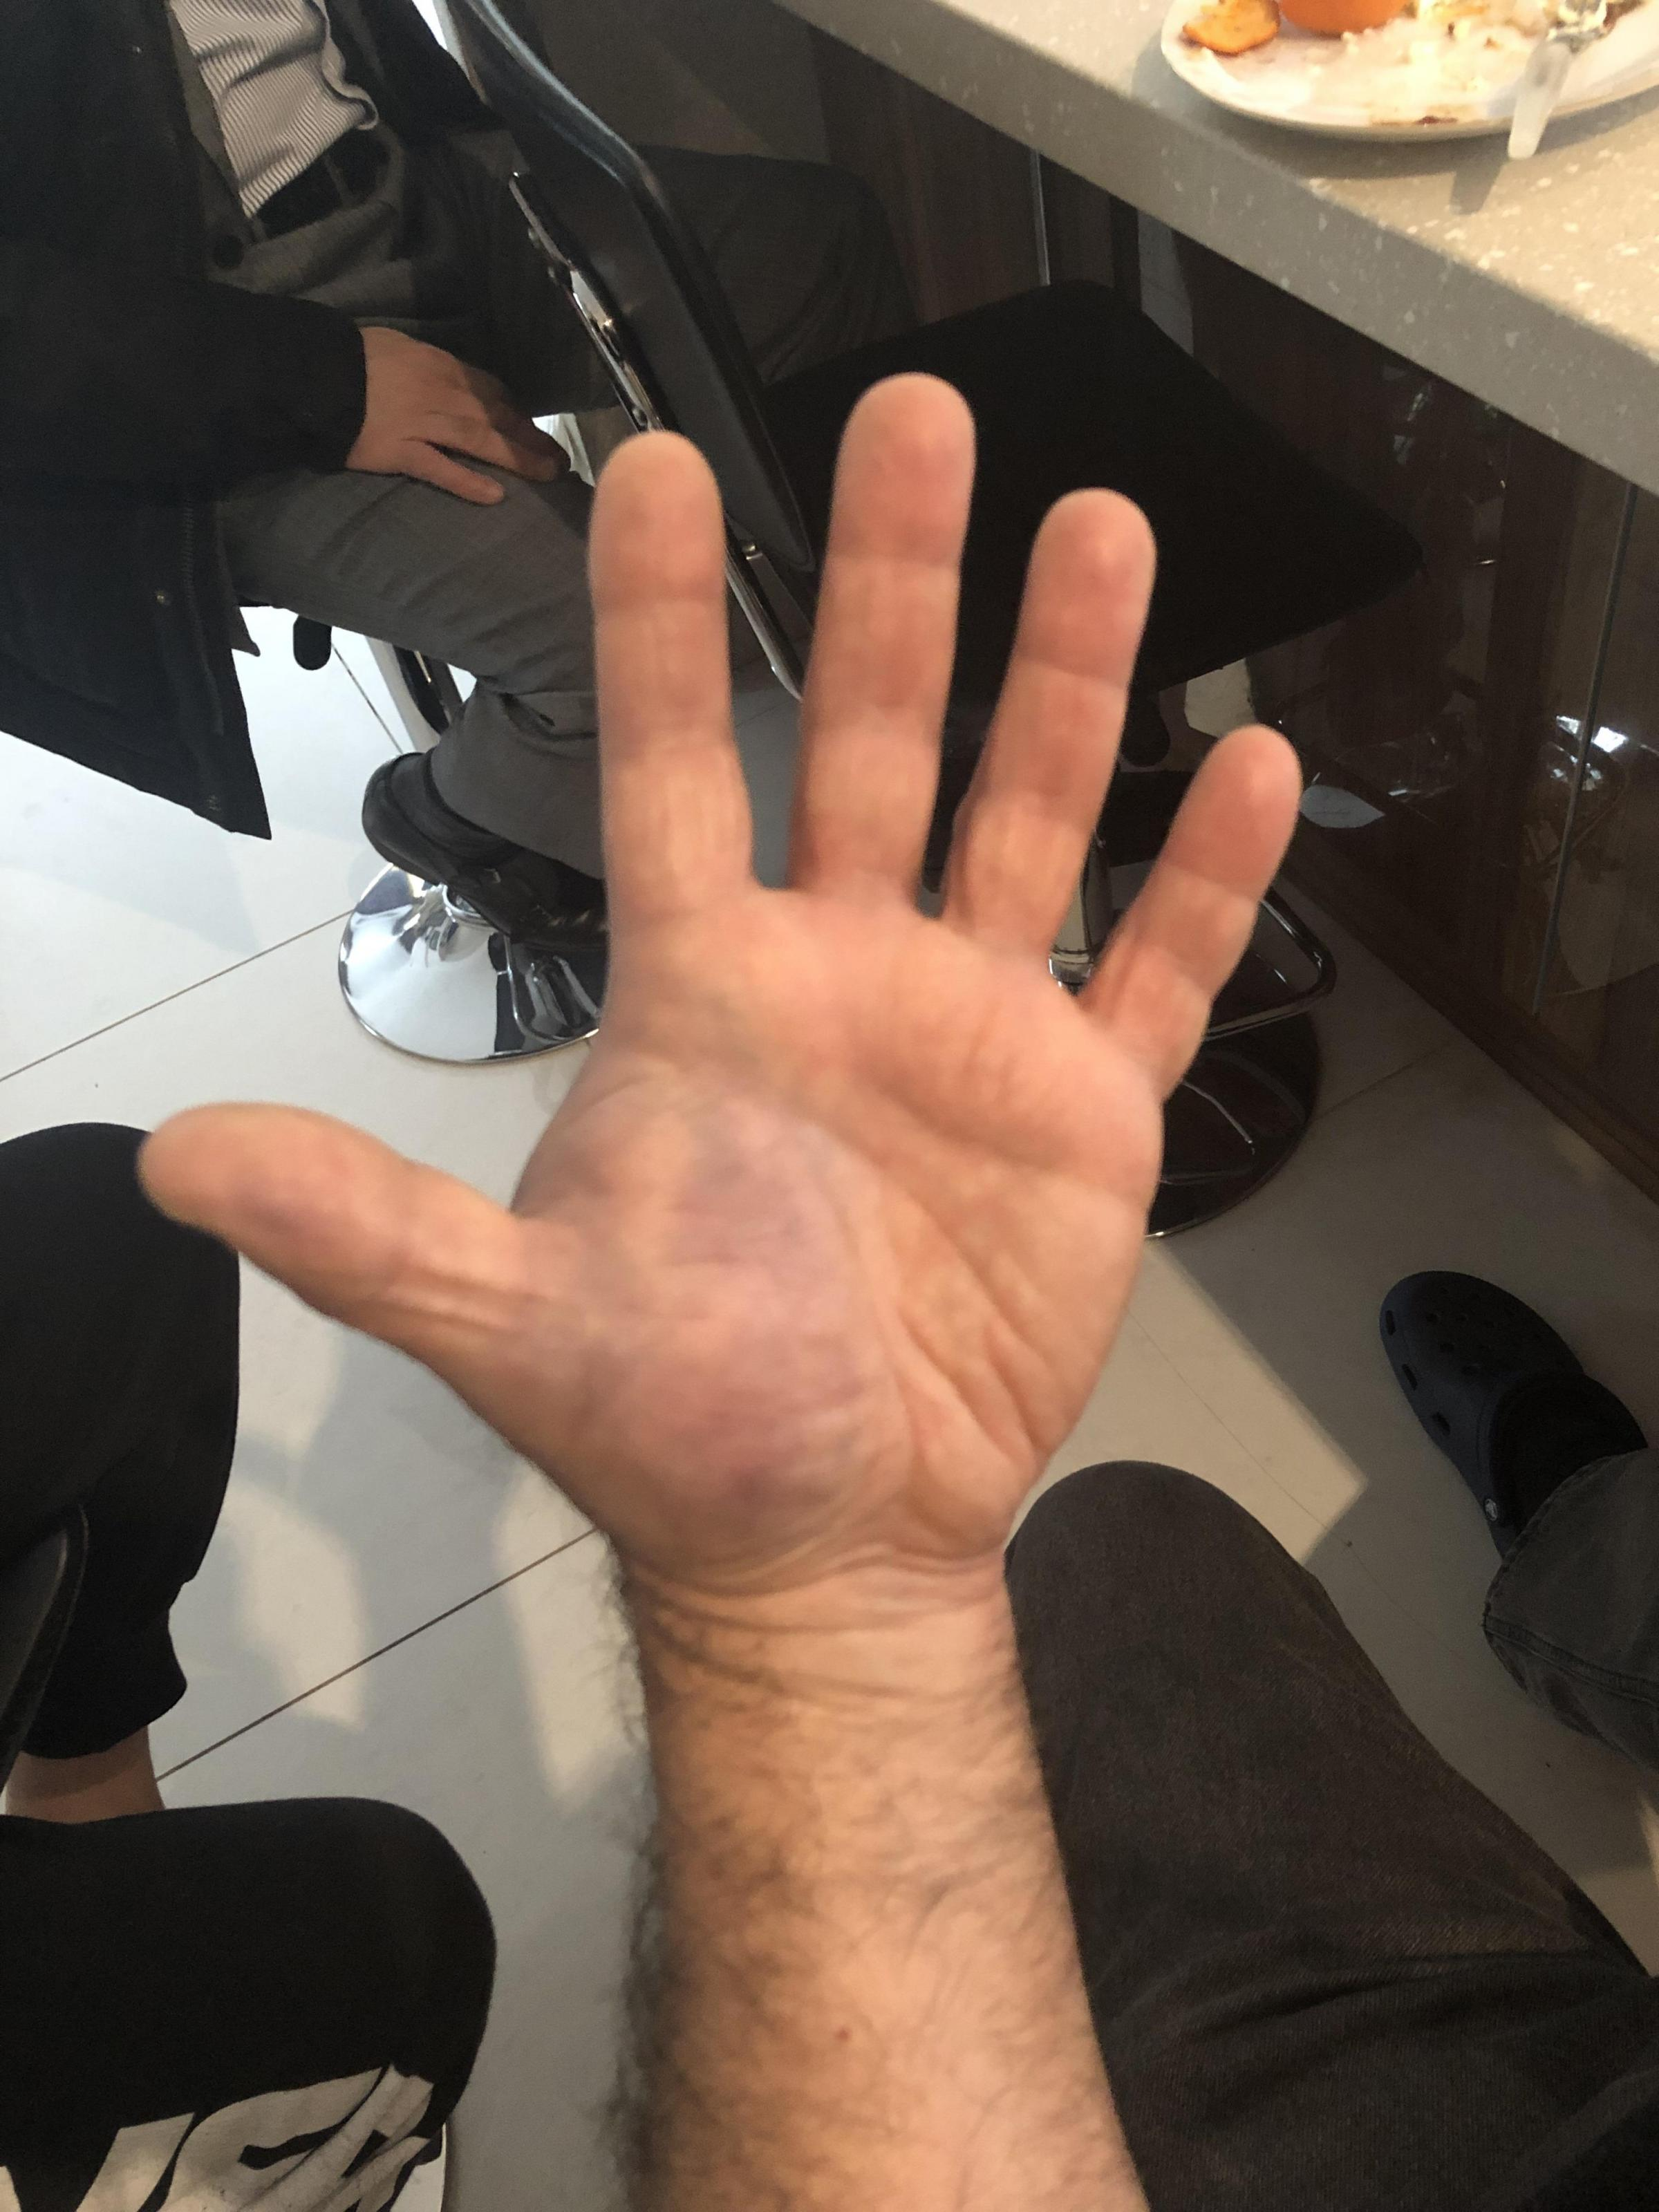 The father's hand is still bruised and swollen from the attack